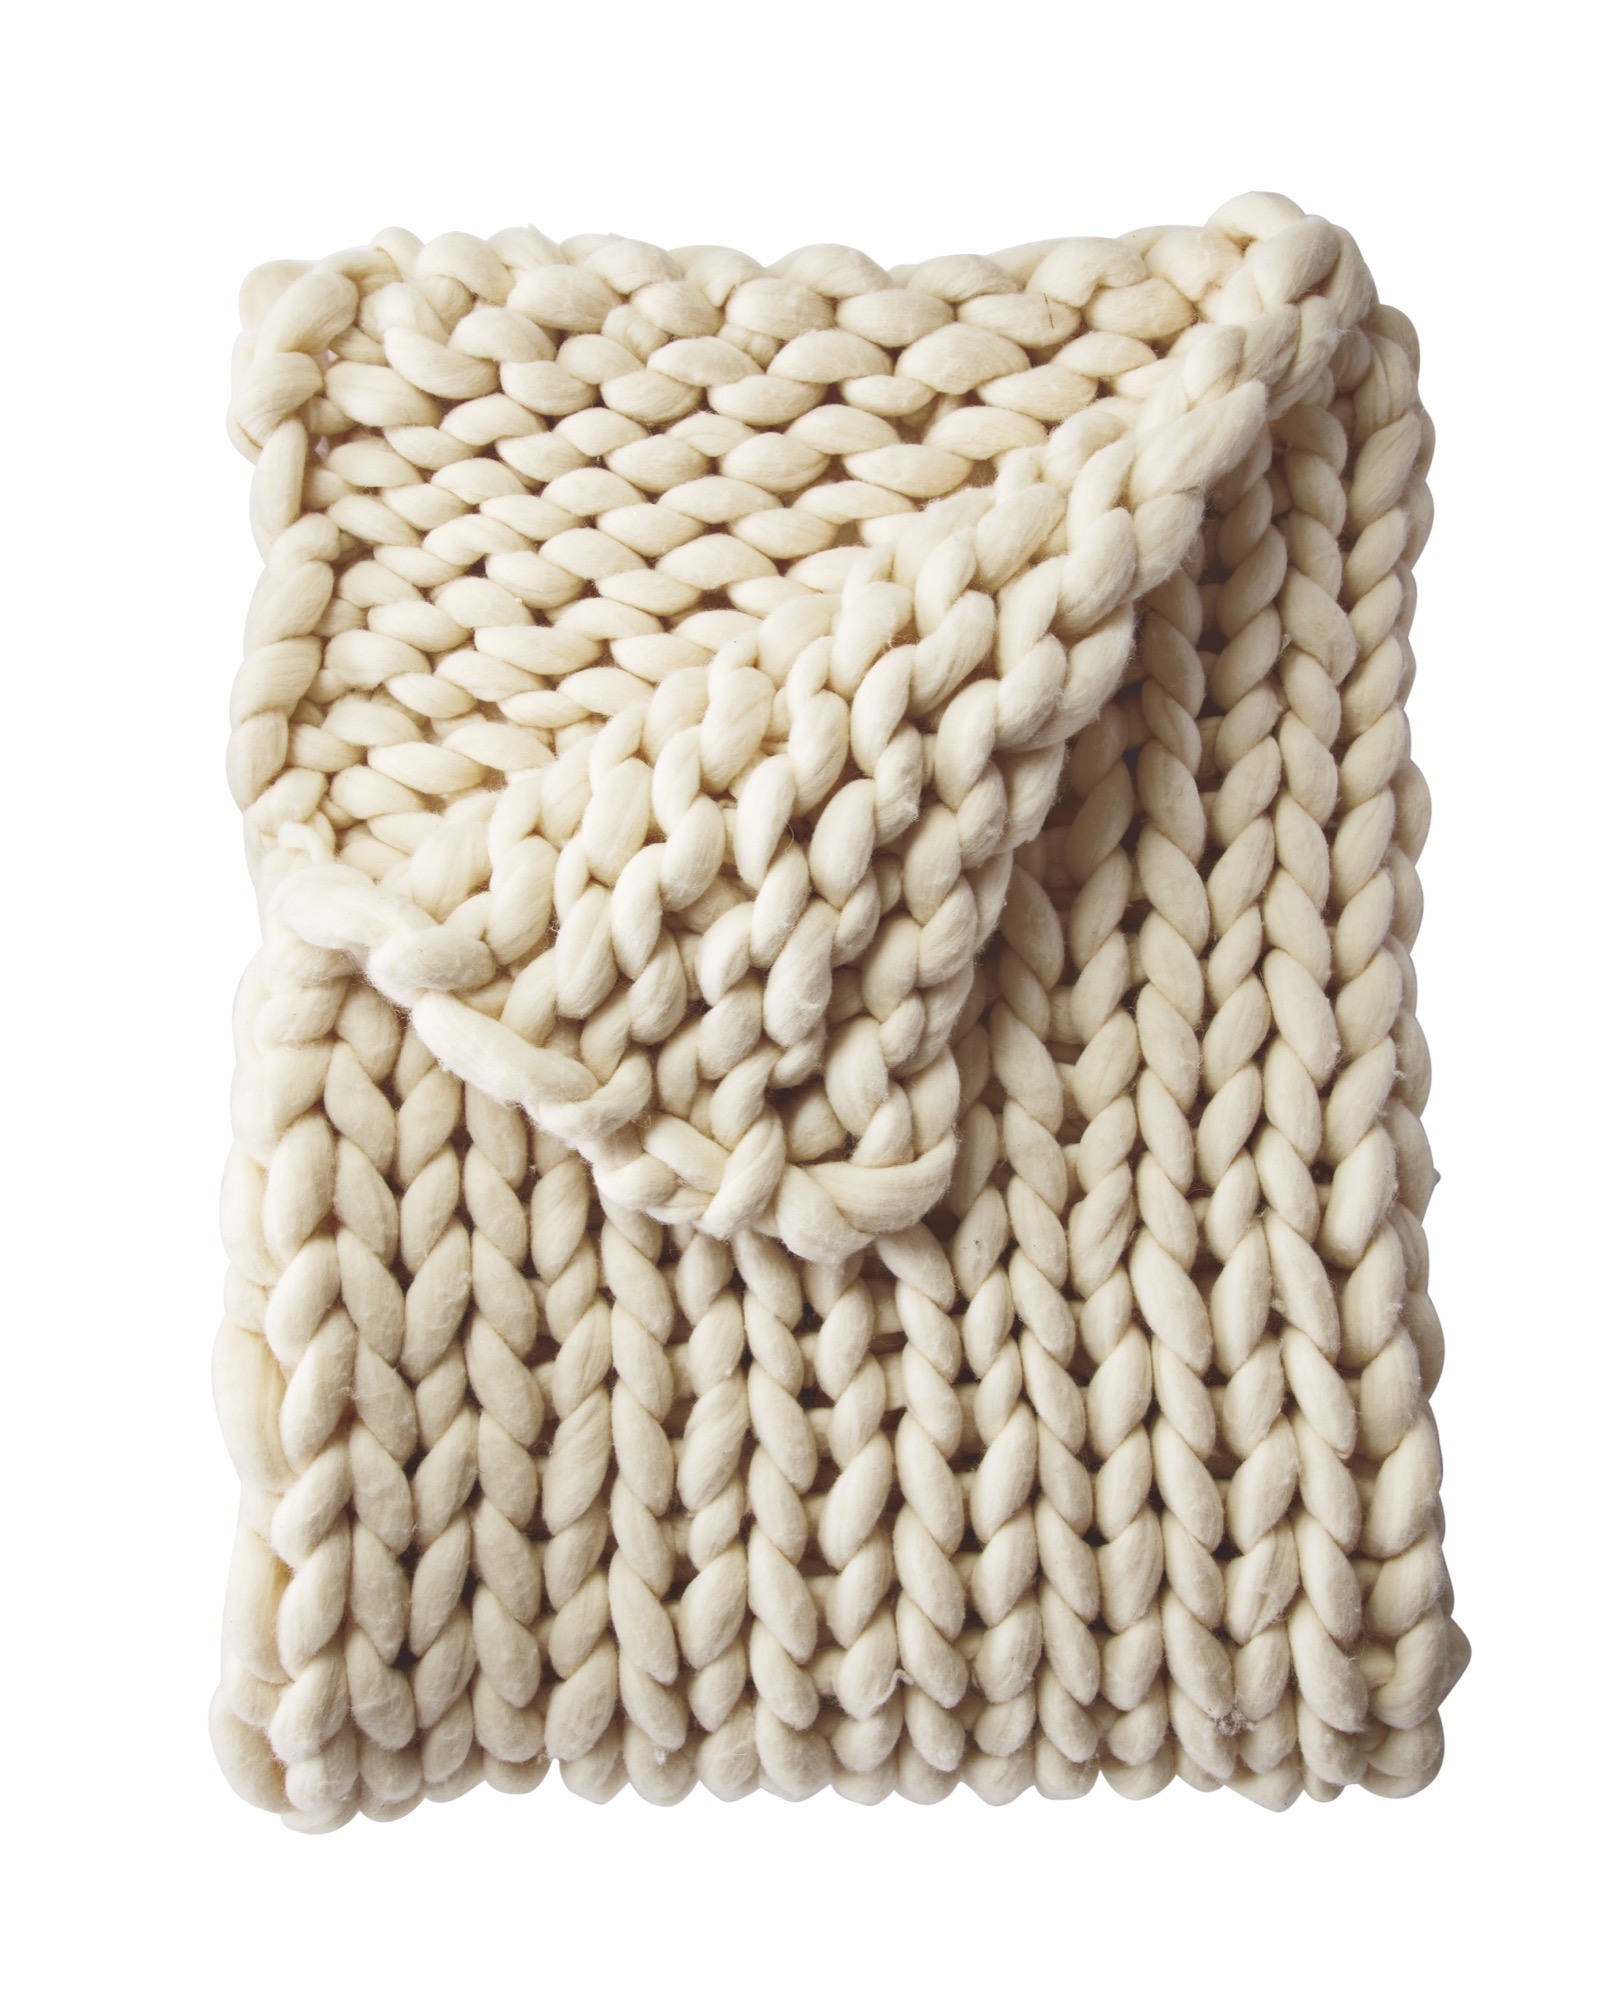 Henley Wool Throw by Serena & Lily